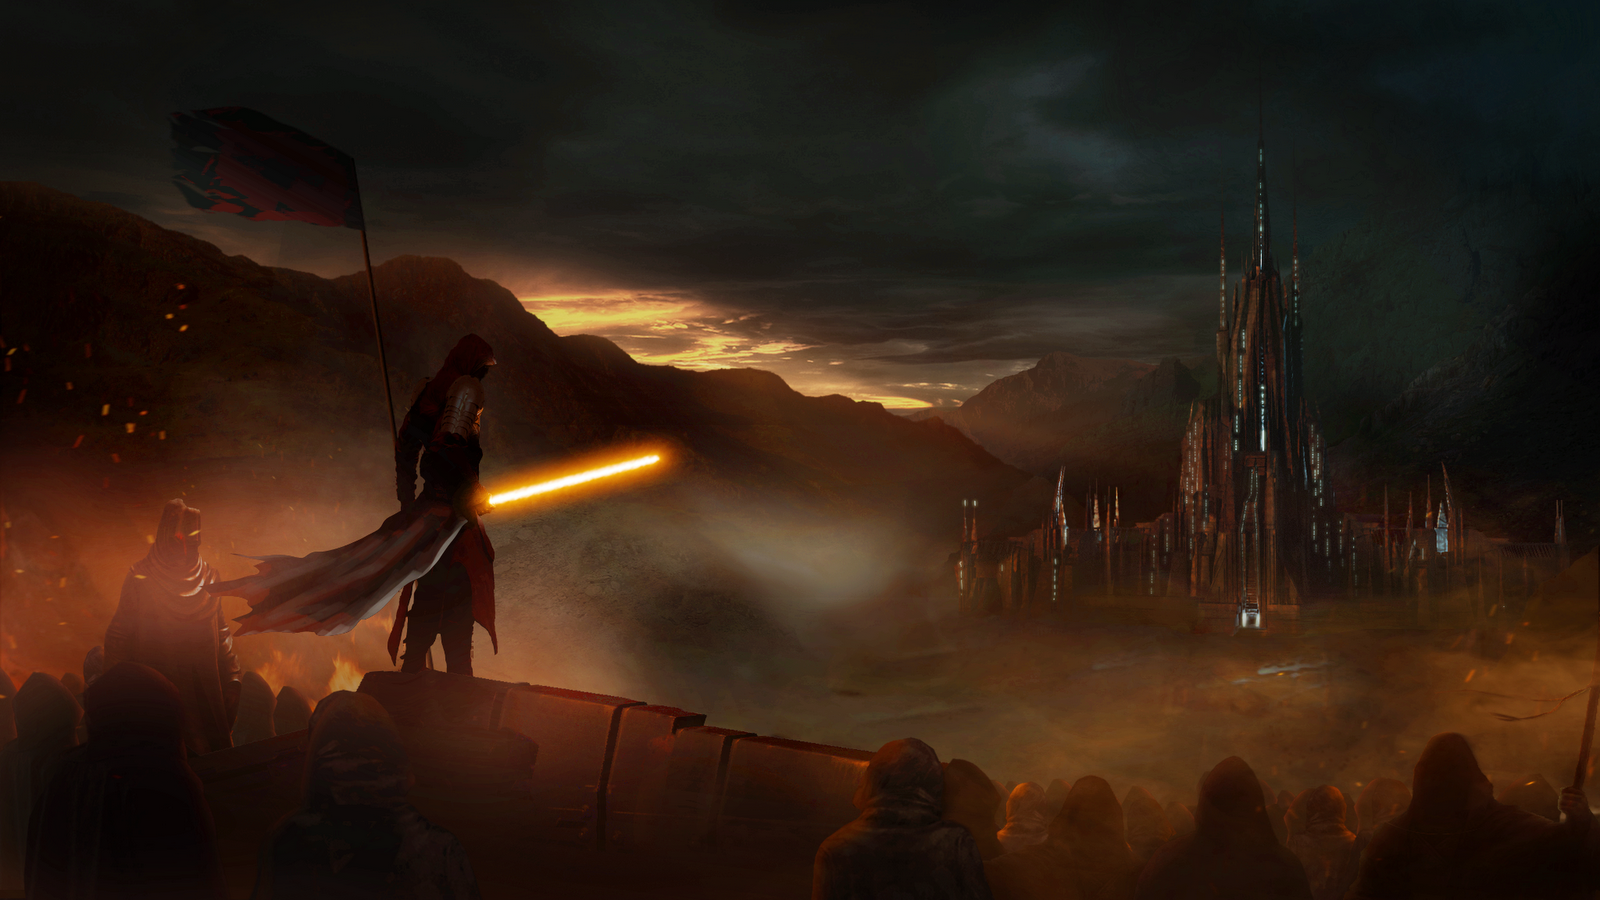 Star wars sith banner  1506524 1600x900 by avatarys